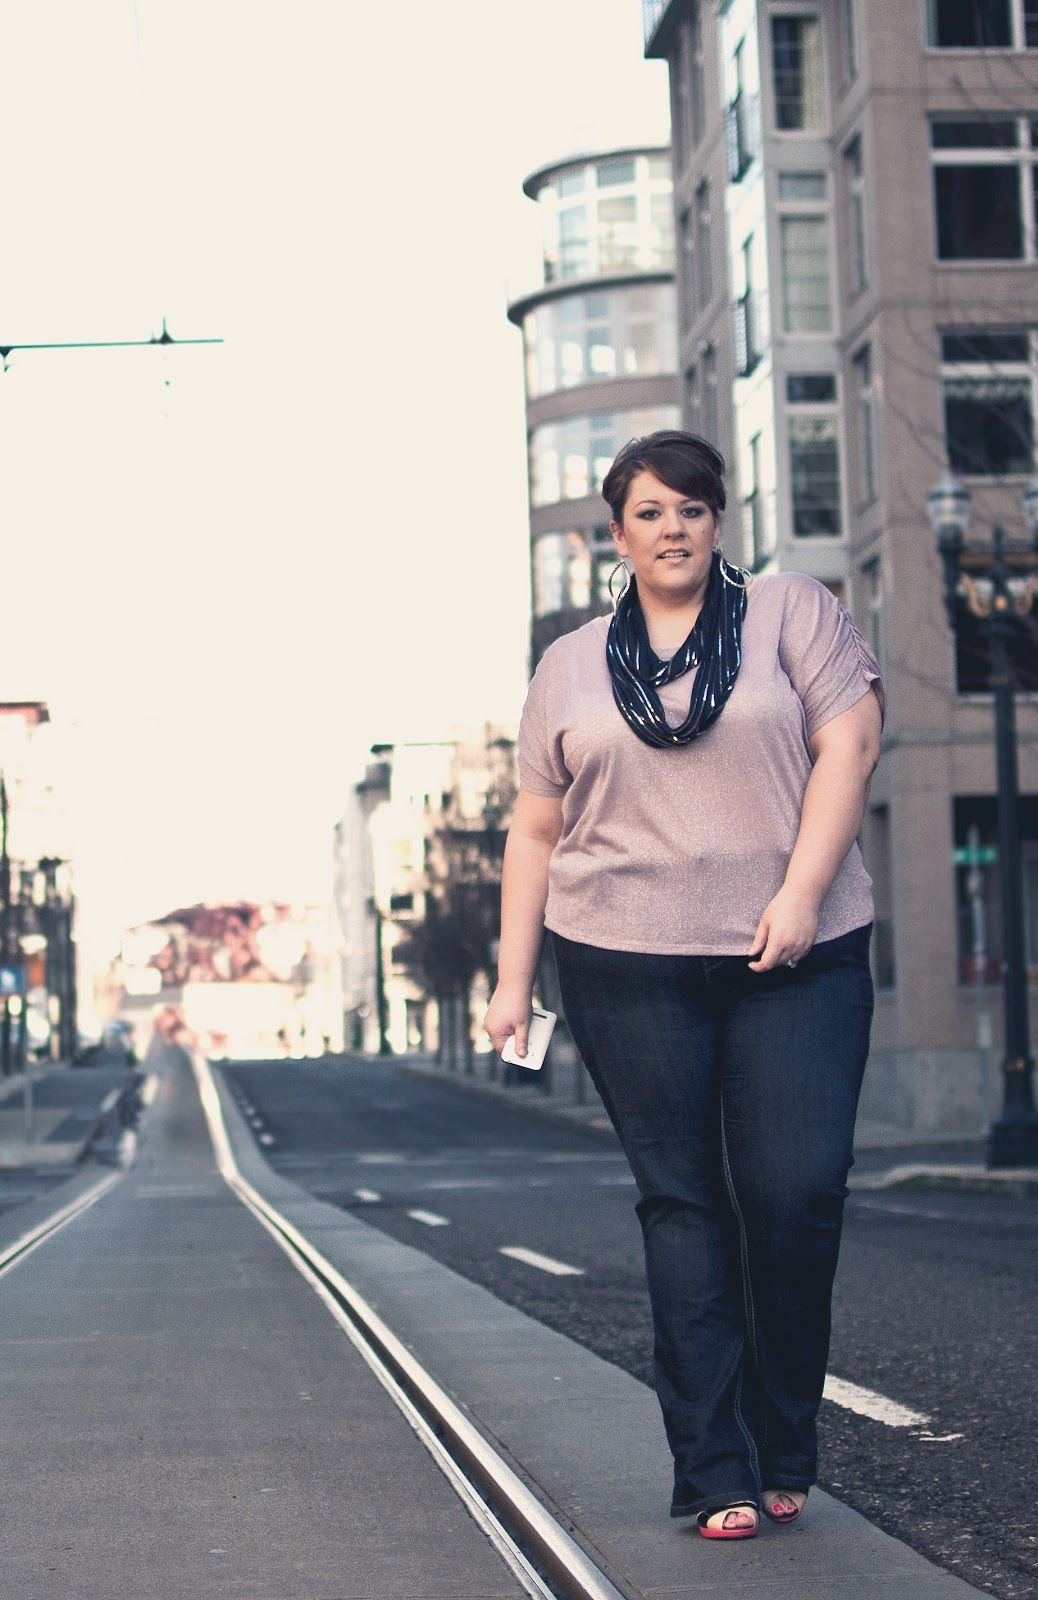 b90304a6596 Love me some Jessica! Meet Skorch Mag Plus Size Fashion Editor-In-Chief